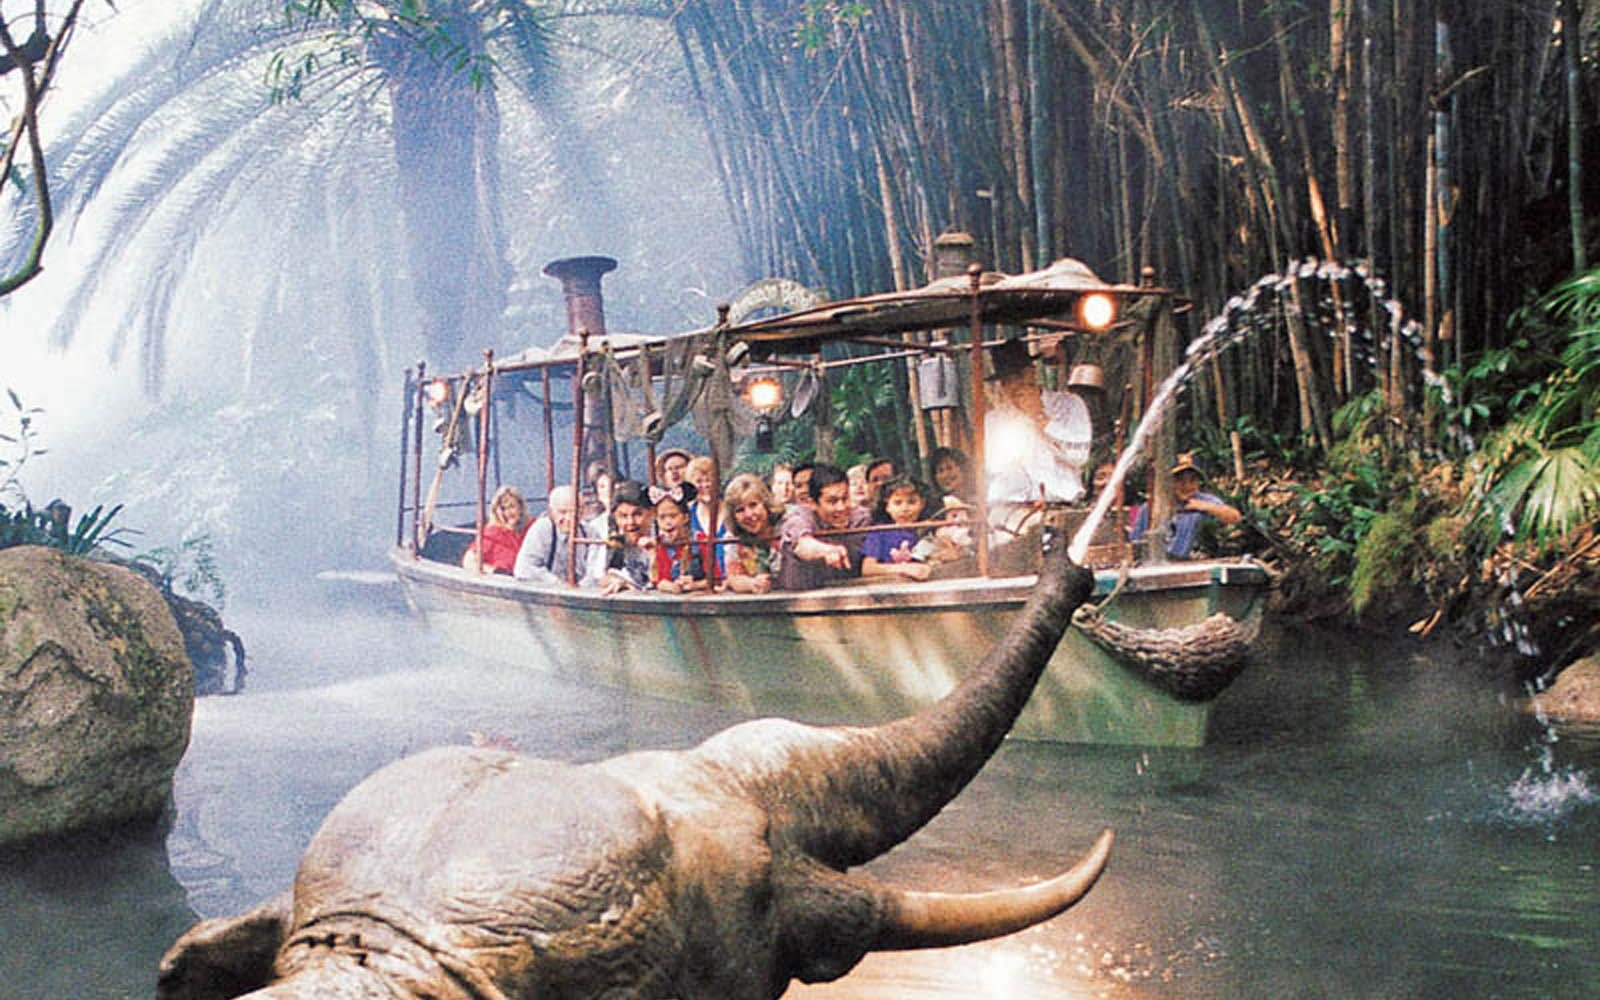 14 Surprising Stories You Never Heard About Disney's Adventureland